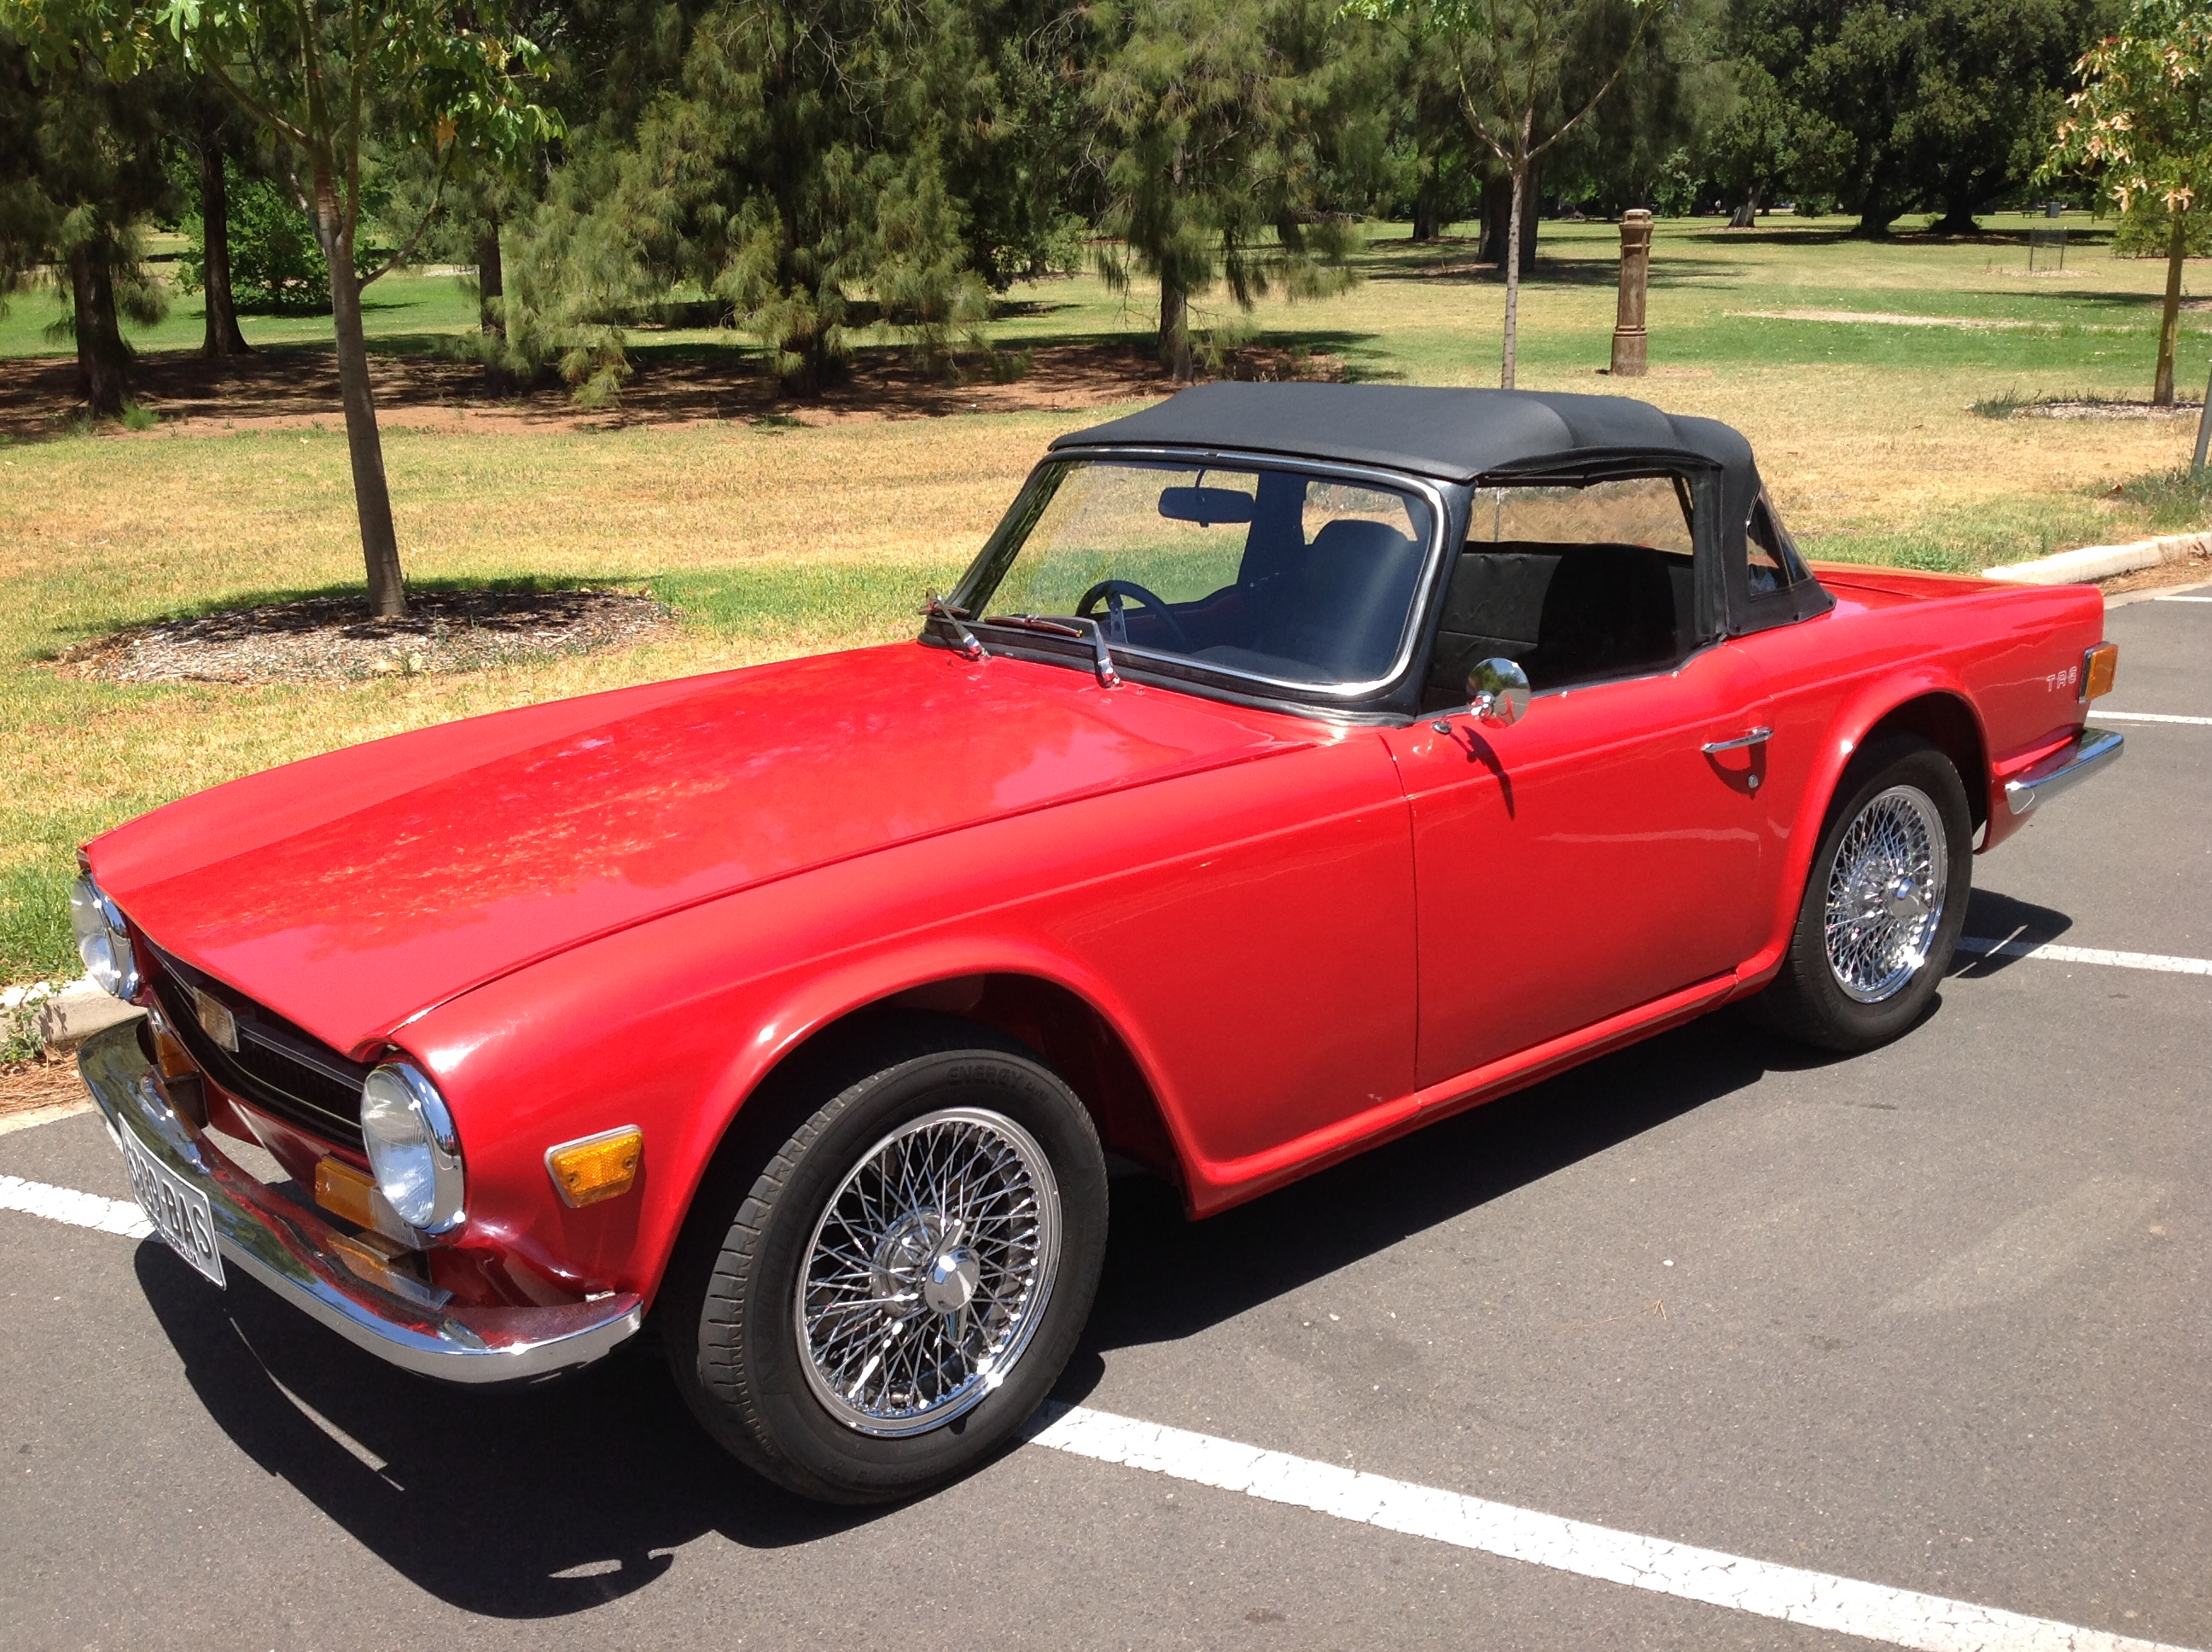 Triumph Tr6 Rhd Fuel Injected 150 Hp Model Sold Collectable